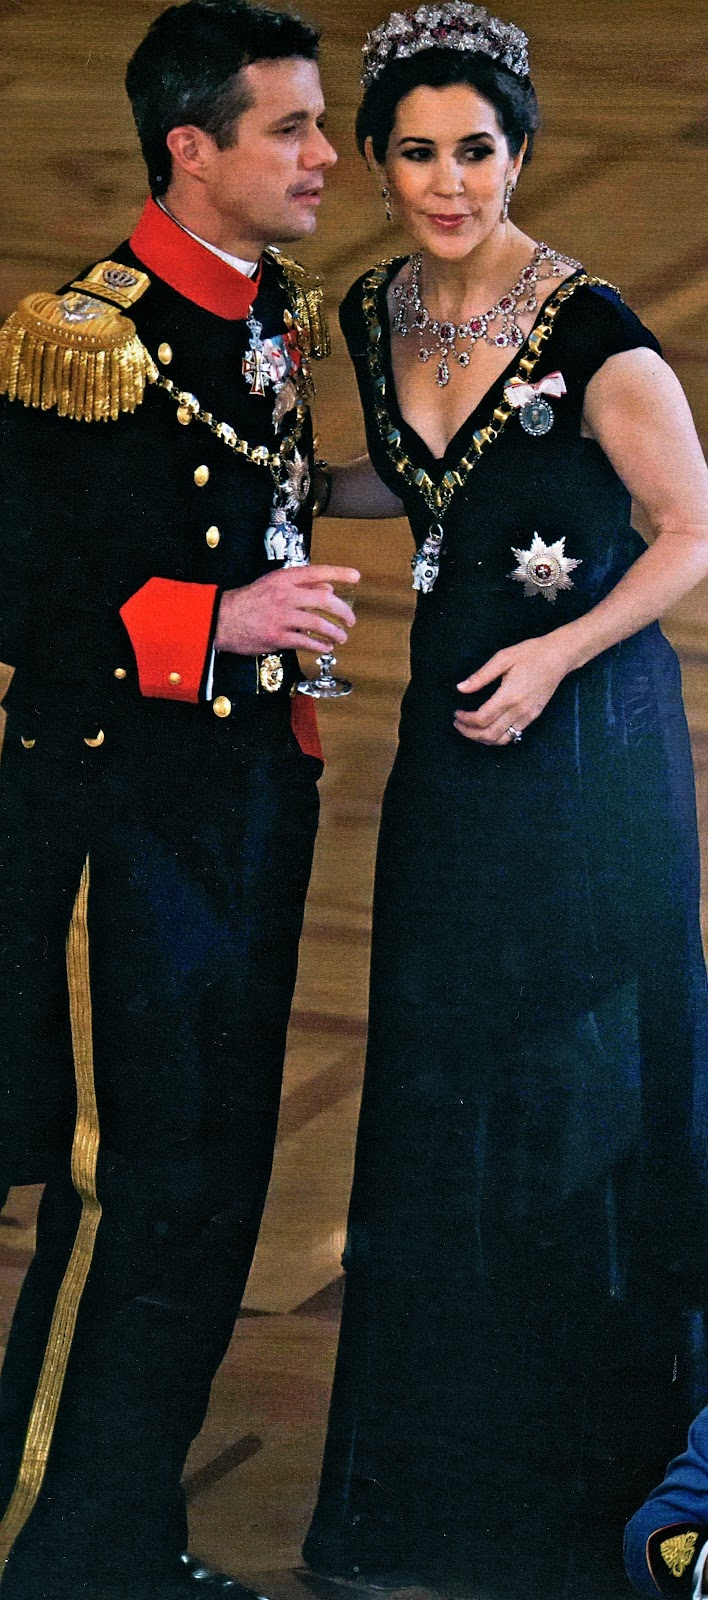 the crown prince & princess of denmark | tiaras and trianon